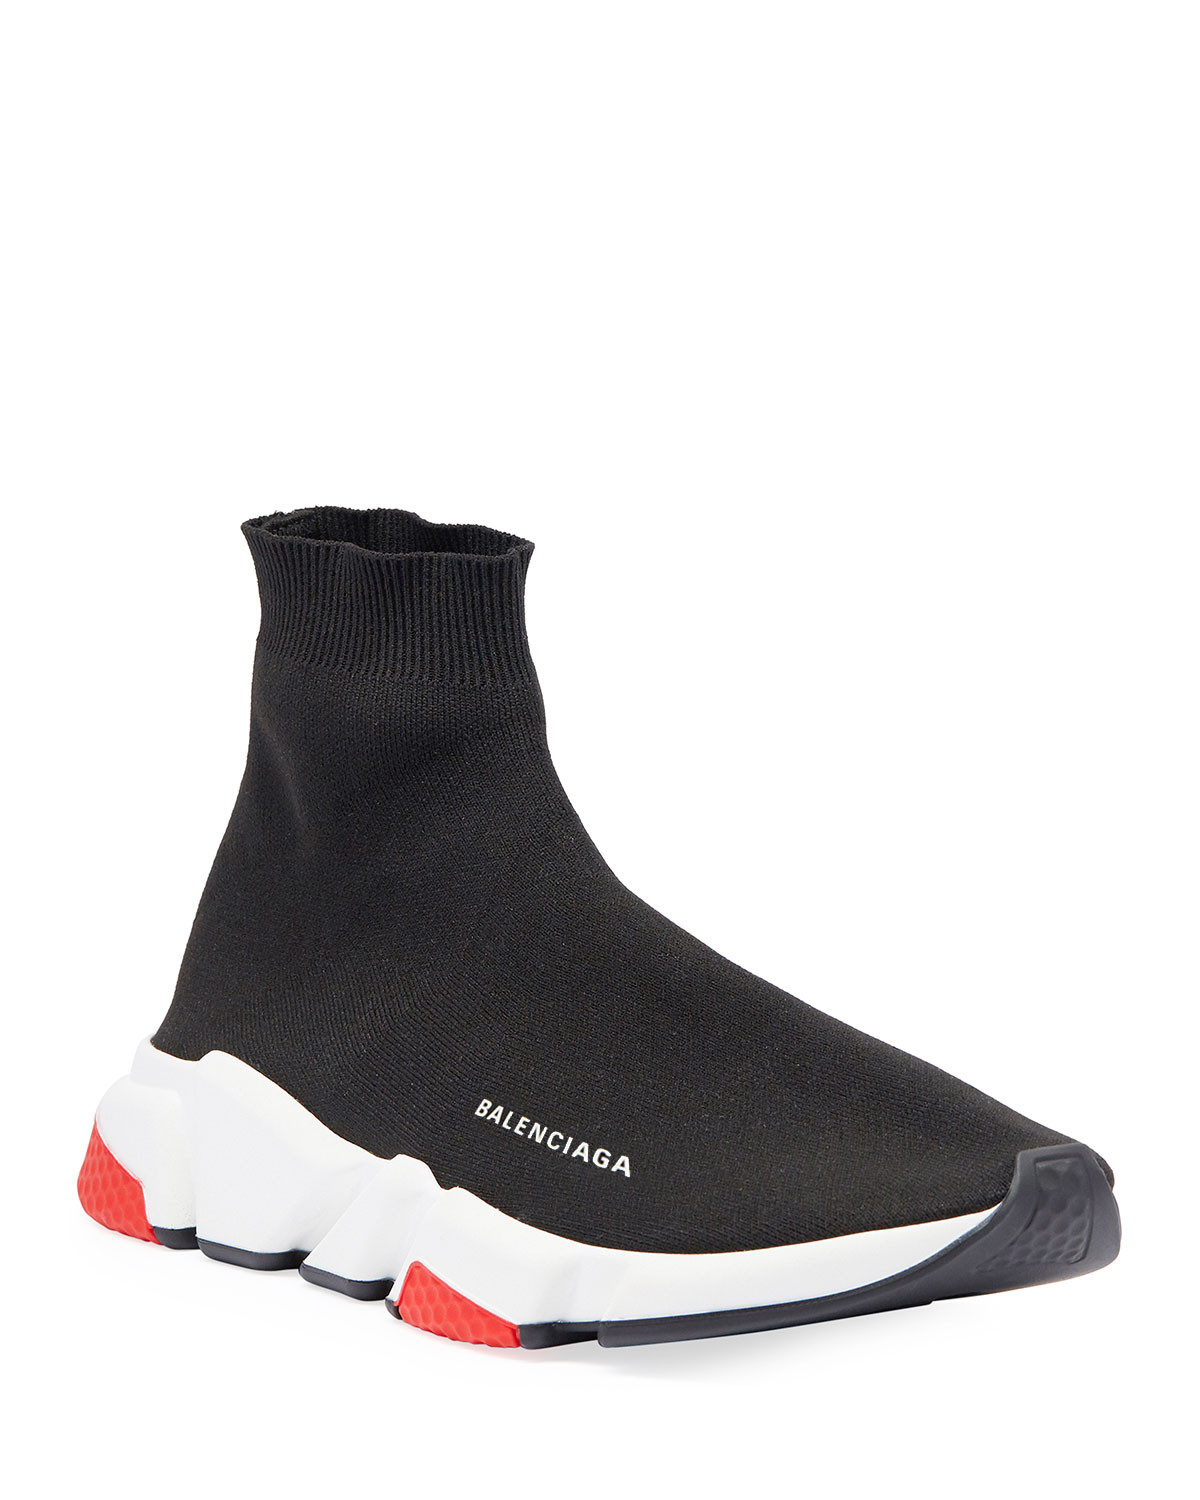 39711fc4180 Balenciaga Men s Speed Mid-Top Trainer Sock Sneakers